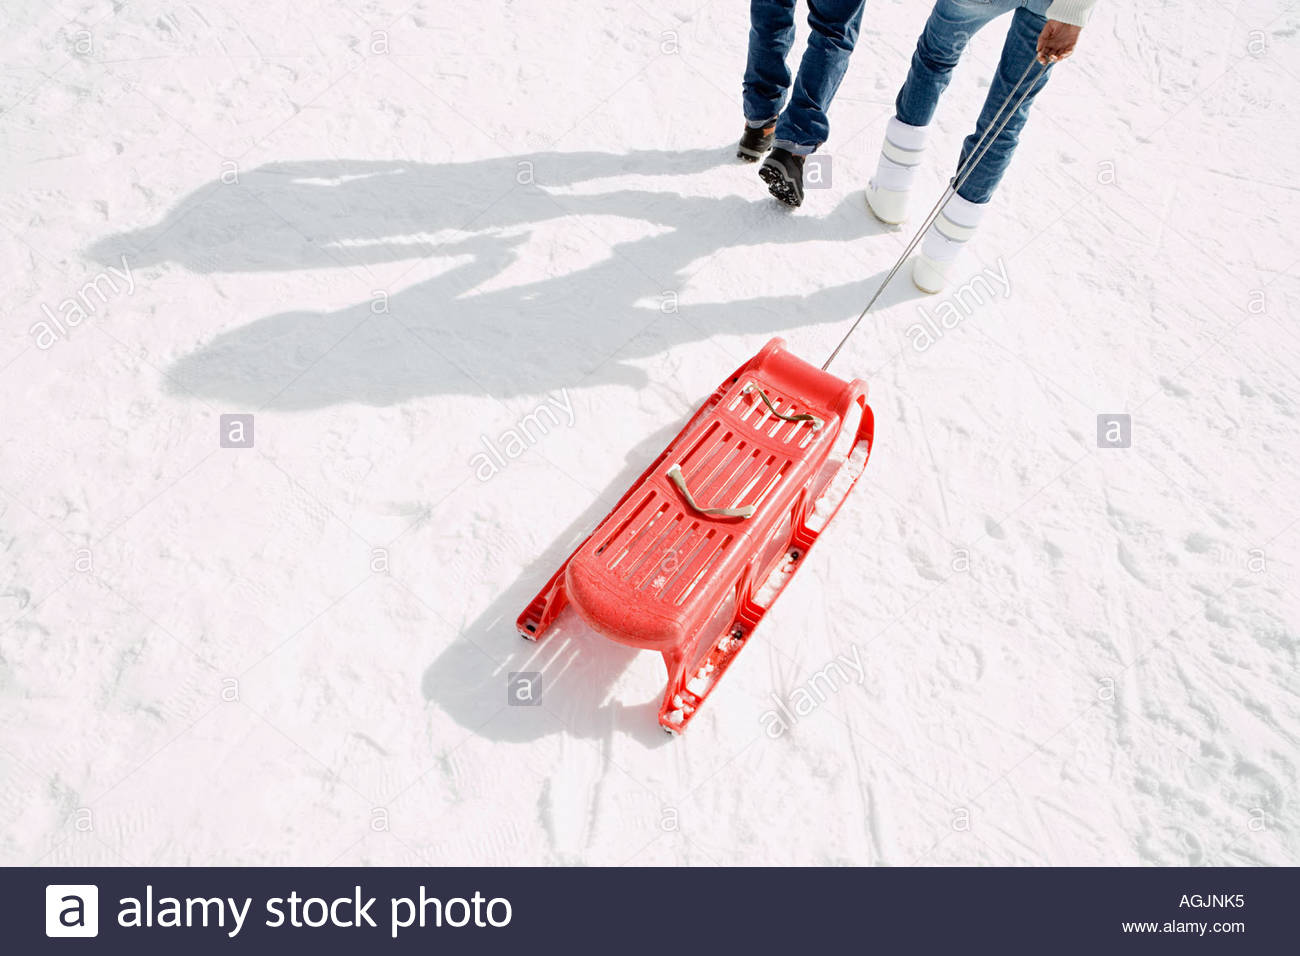 Two people pulling a sleigh - Stock Image